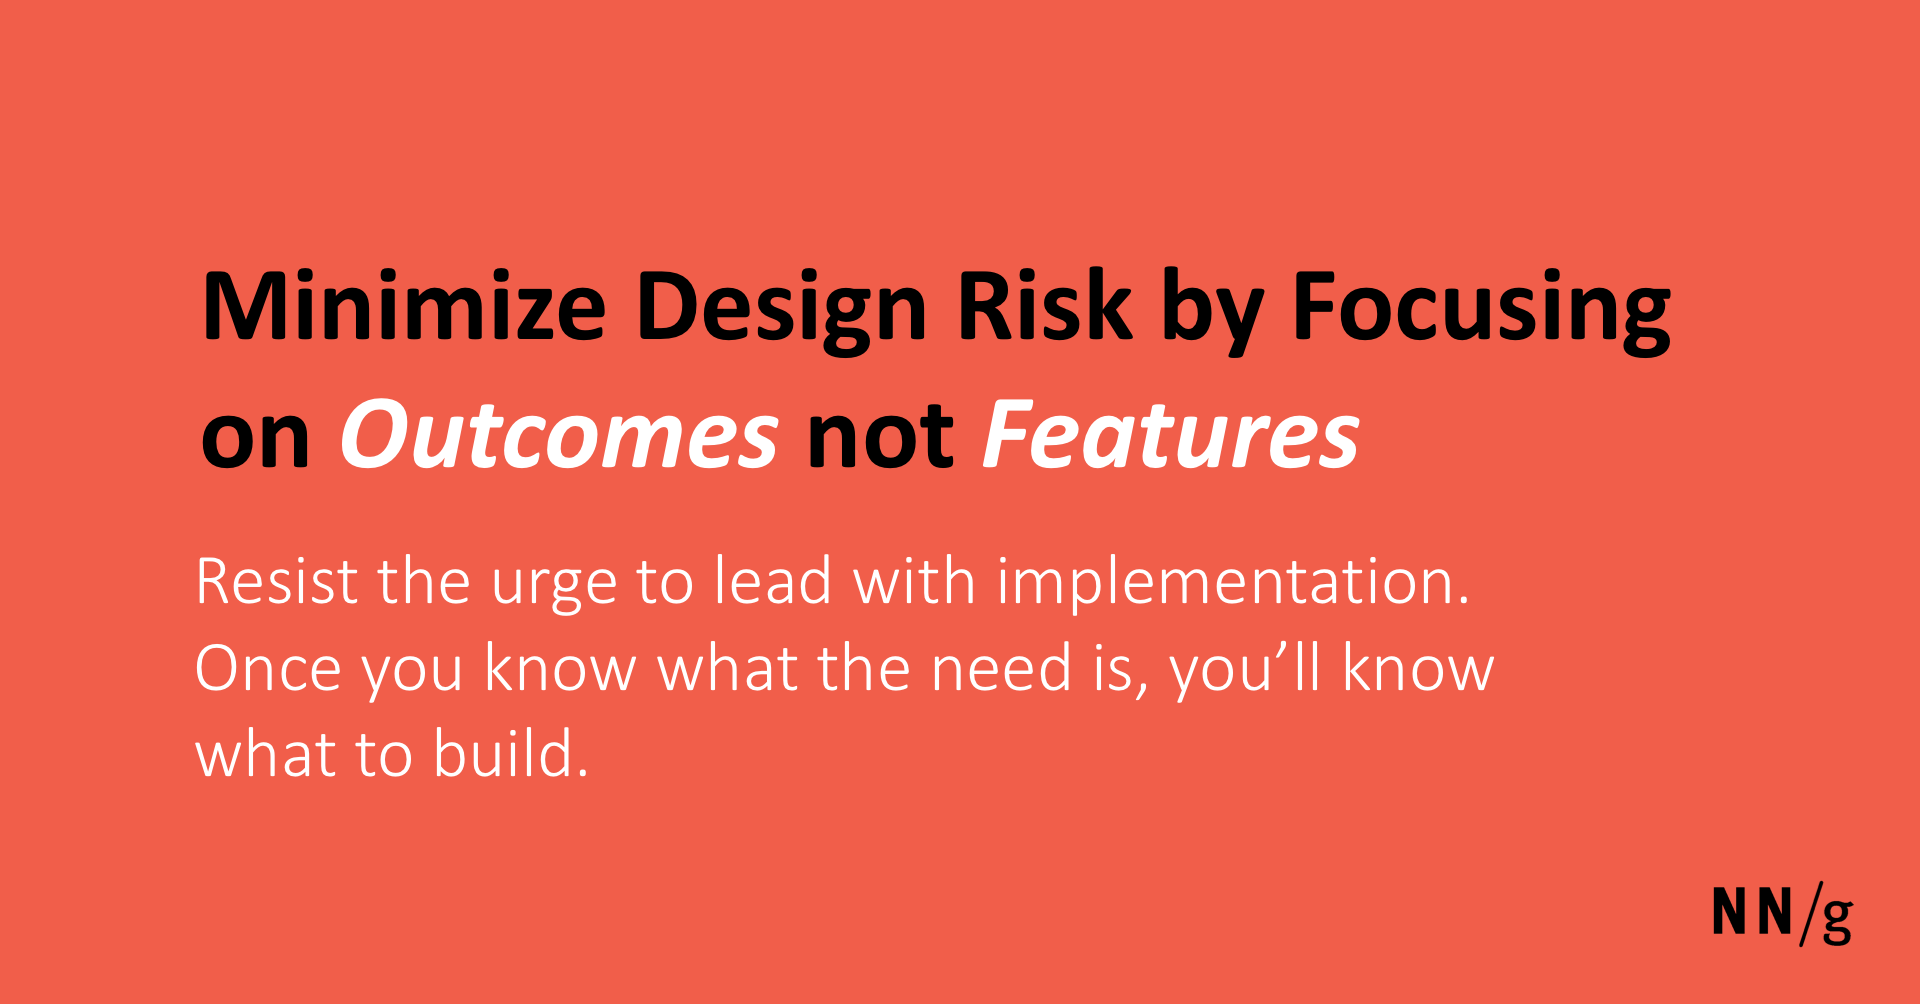 Minimize Design Risk by Focusing on Outcomes not Features